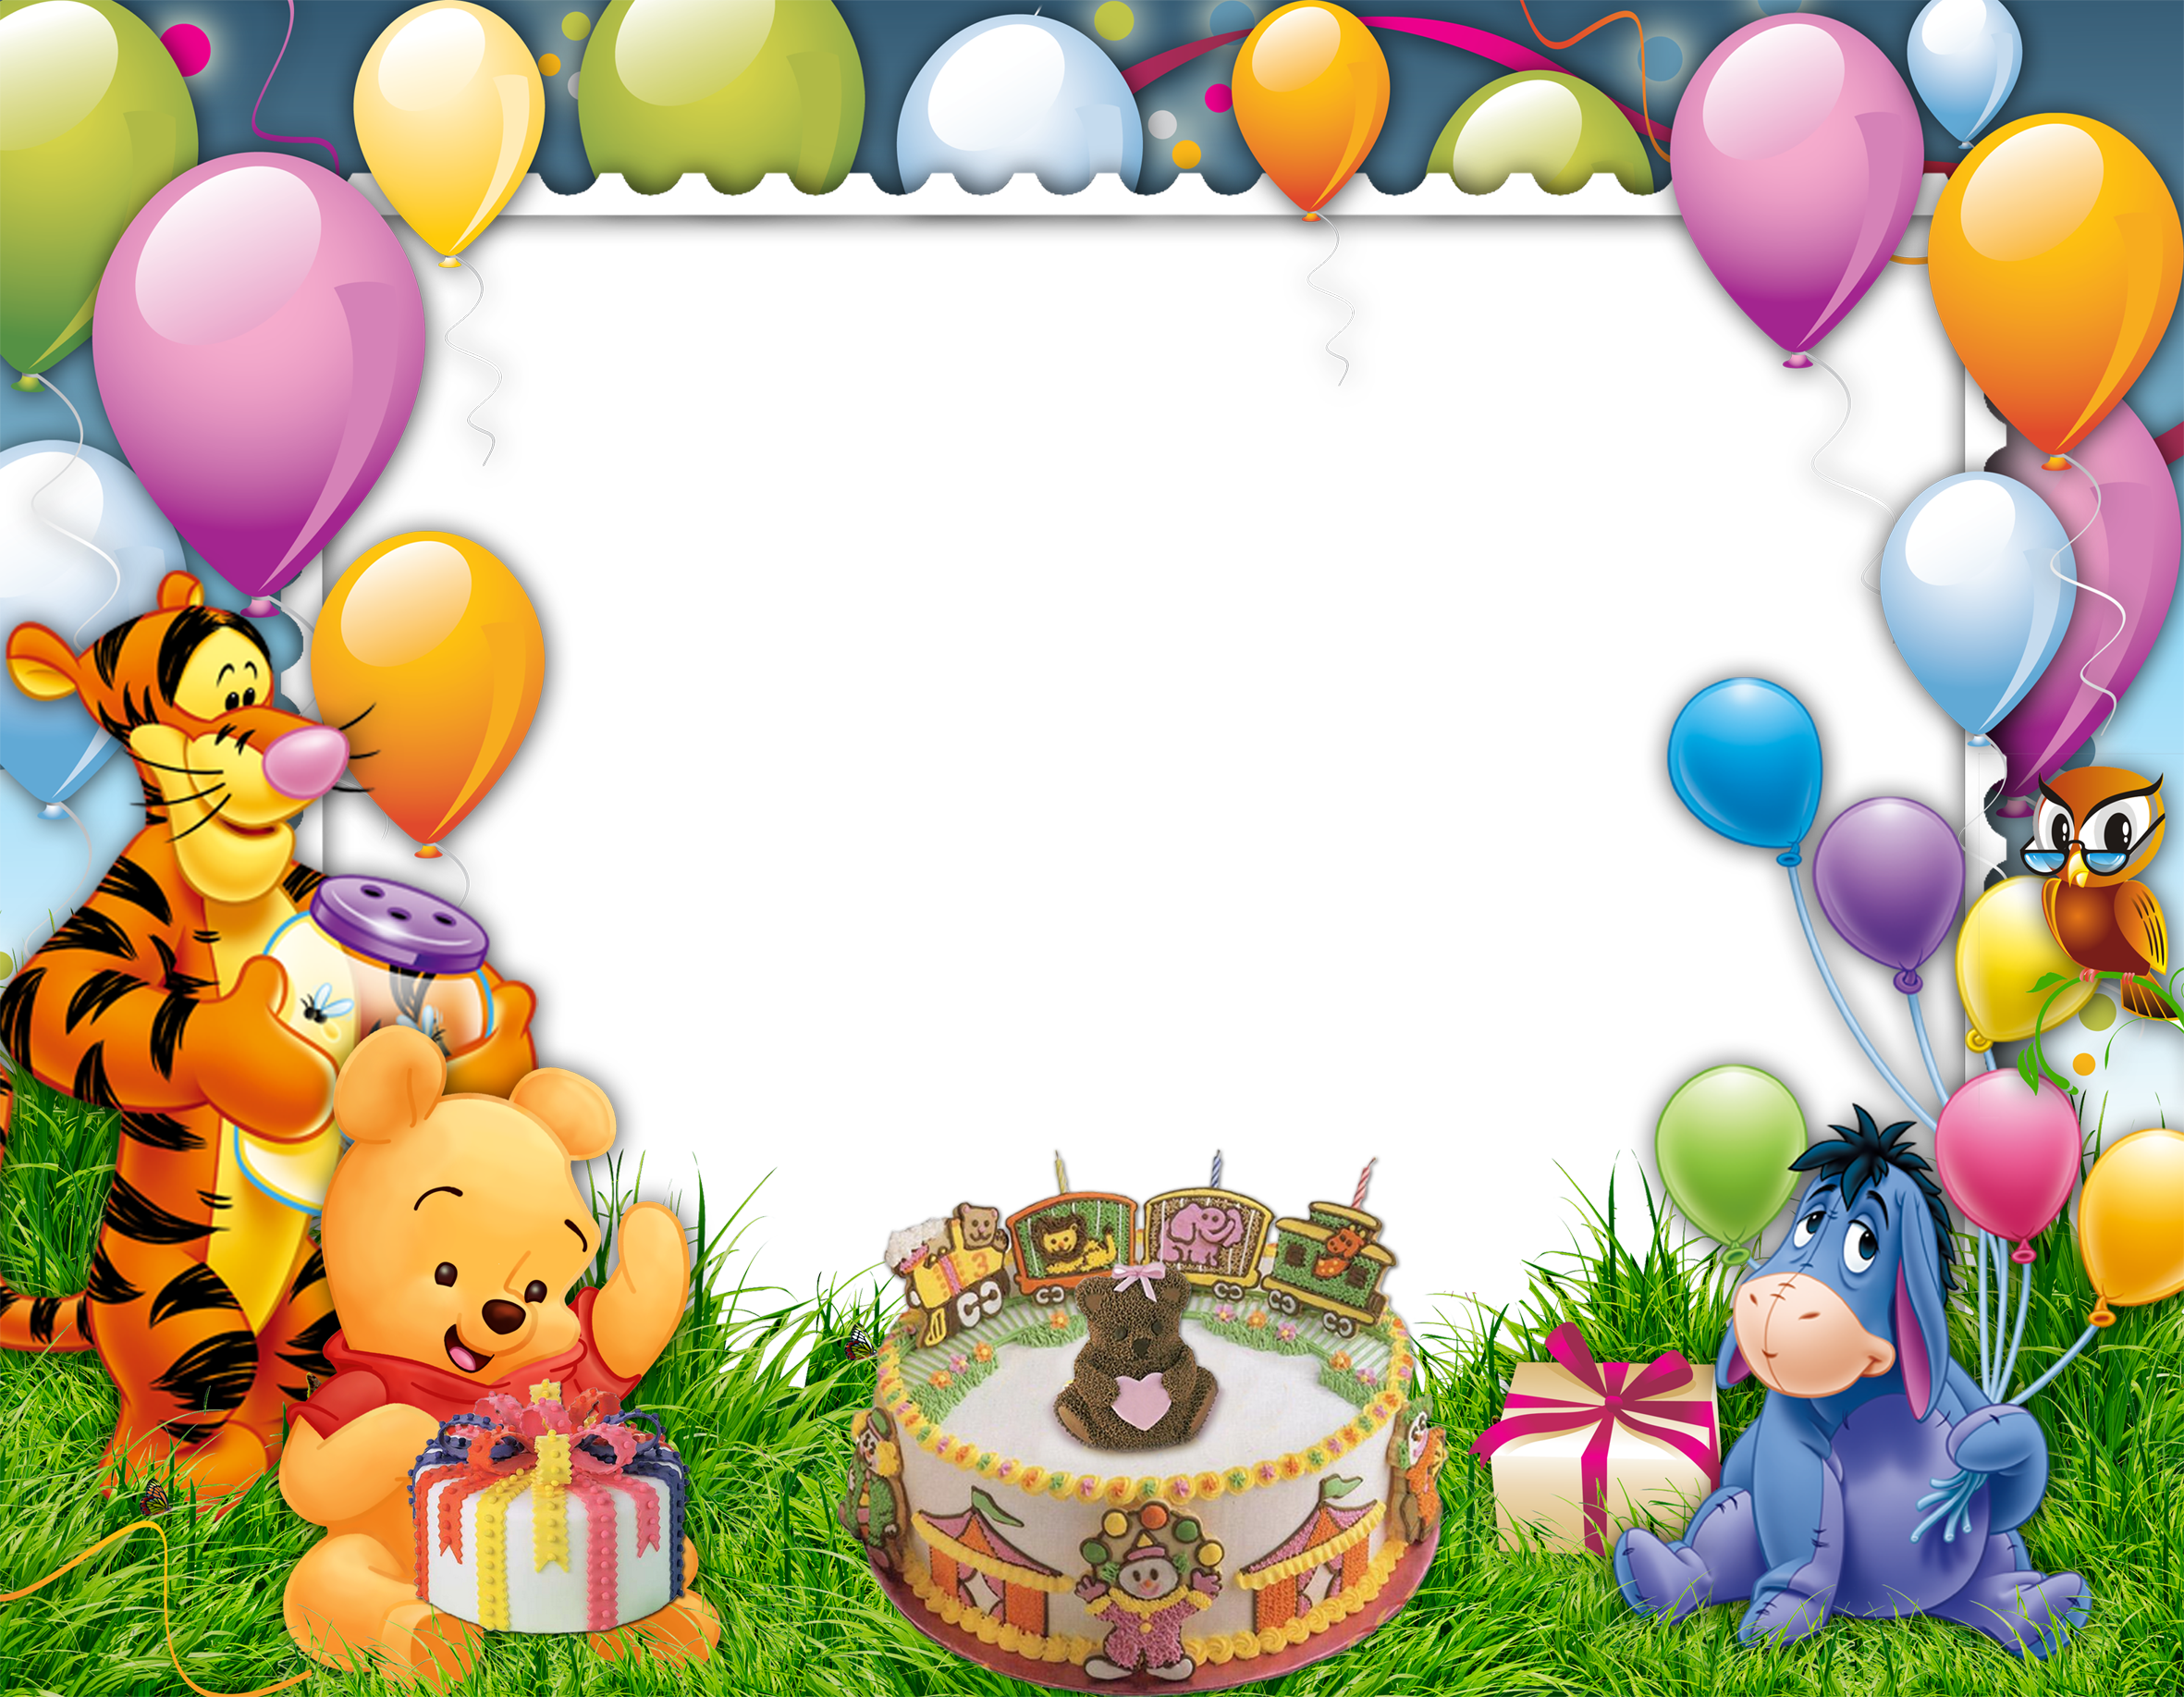 Cartoon frame png. Birthday images free download